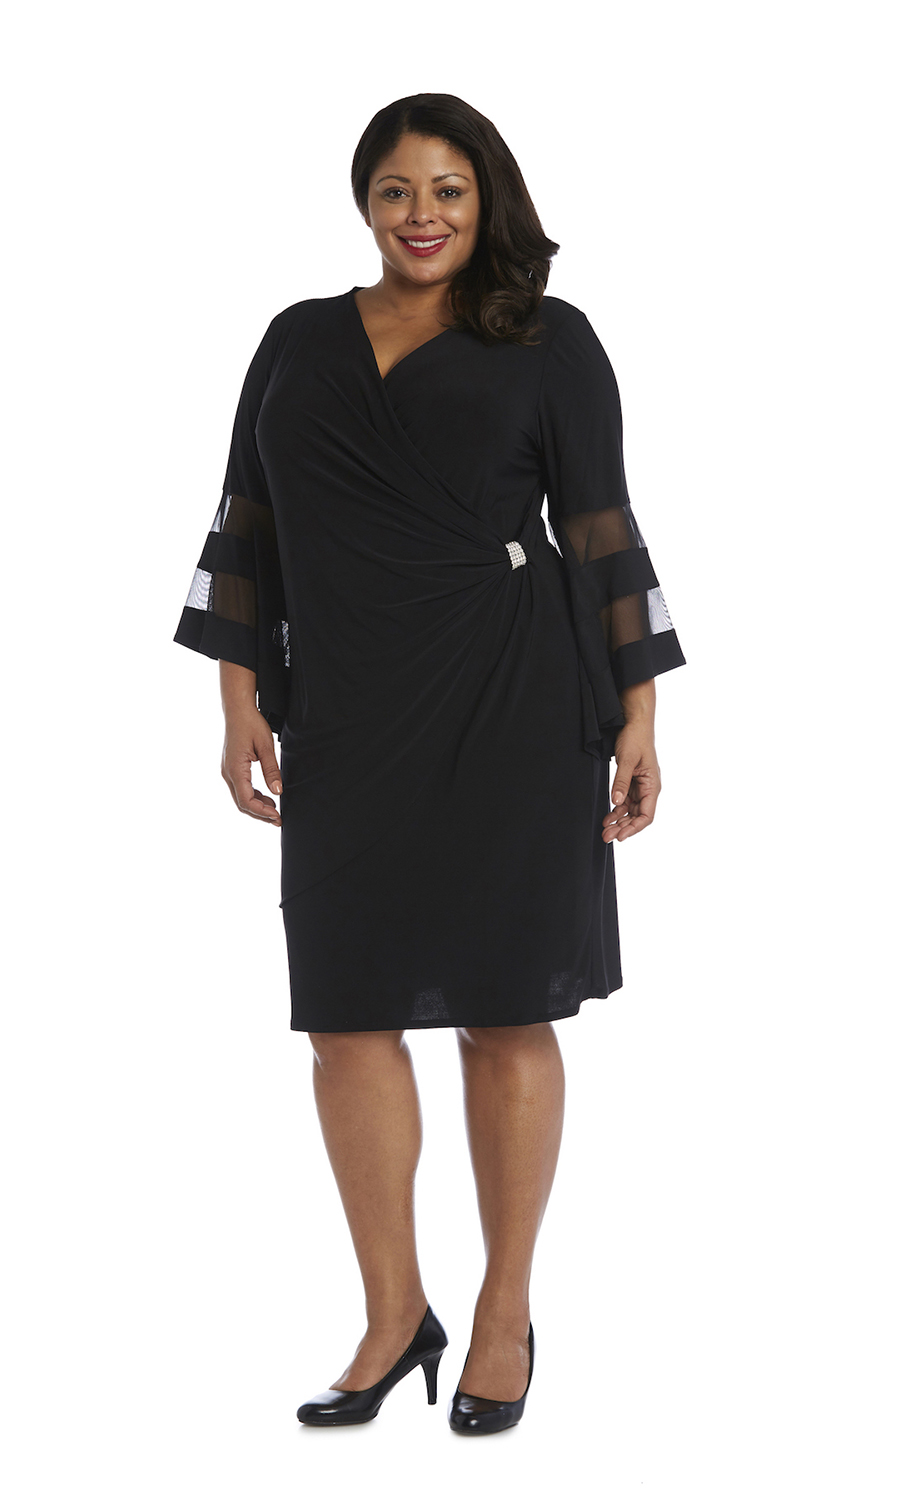 Illusion Bell Sleeve Dress with Rush Detail at Waist - Plus - Black - Front